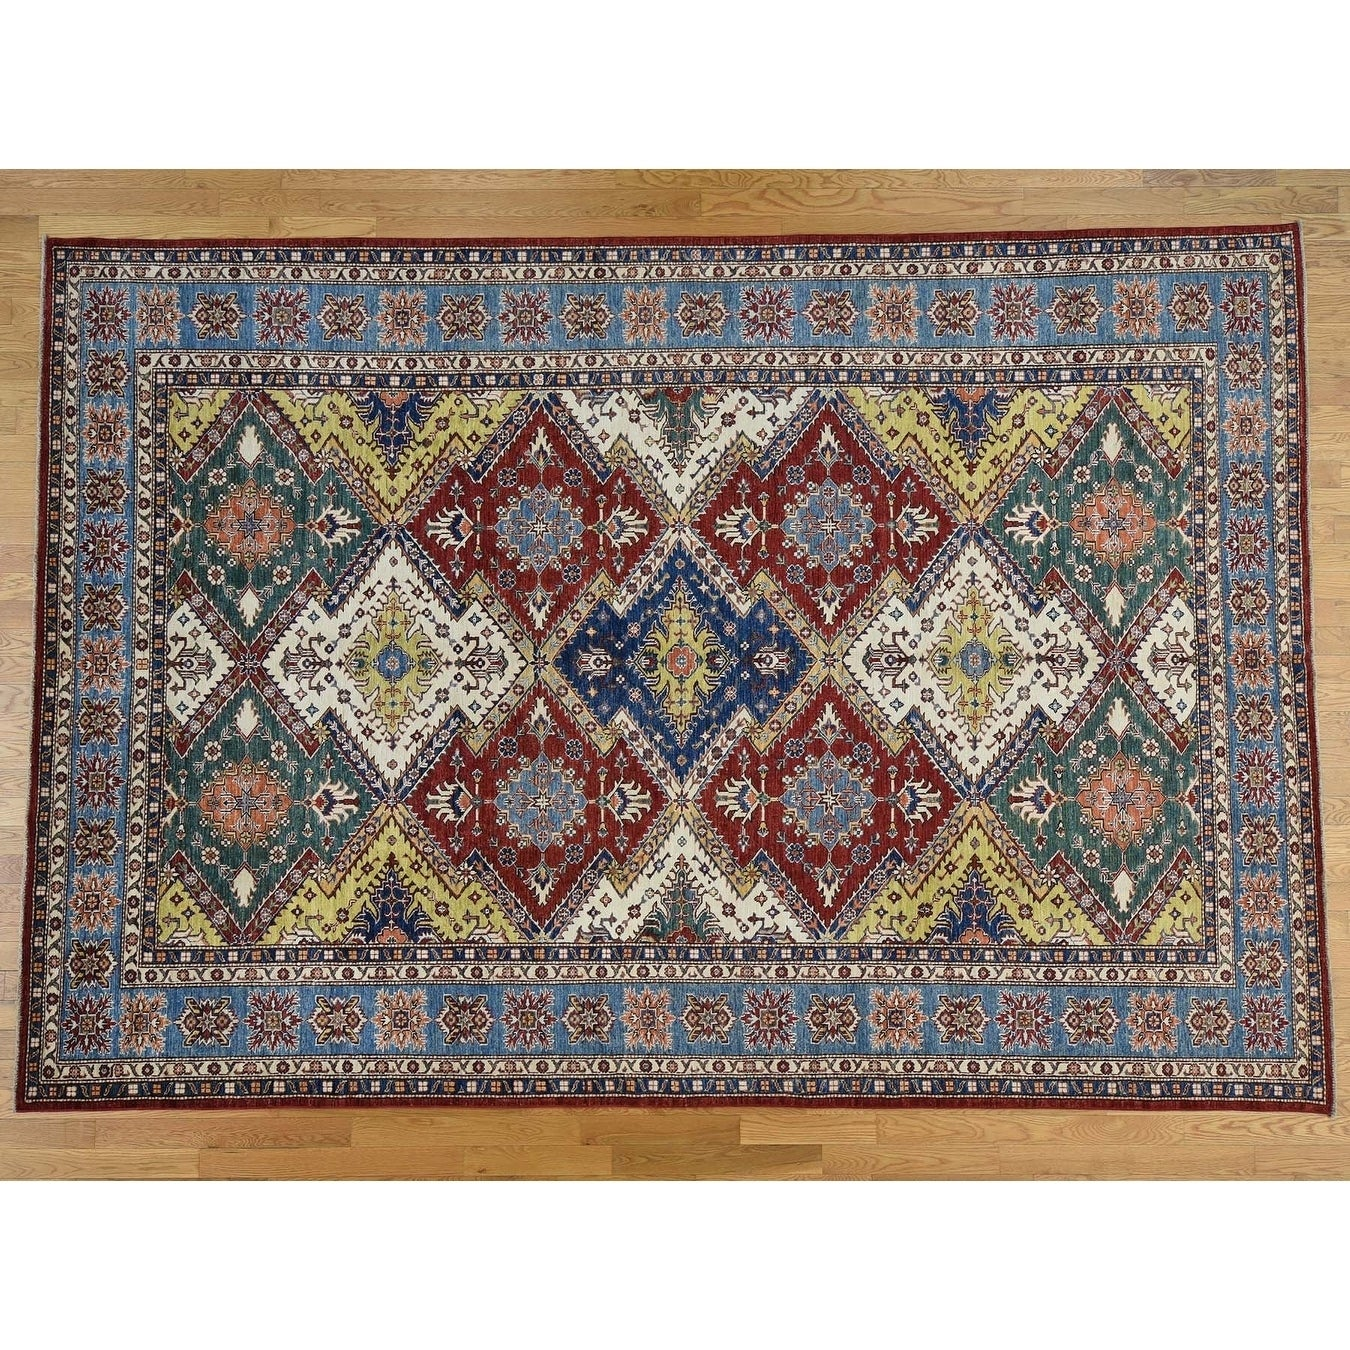 Hand Knotted Multicolored Kazak with Wool Oriental Rug - 87 x 124